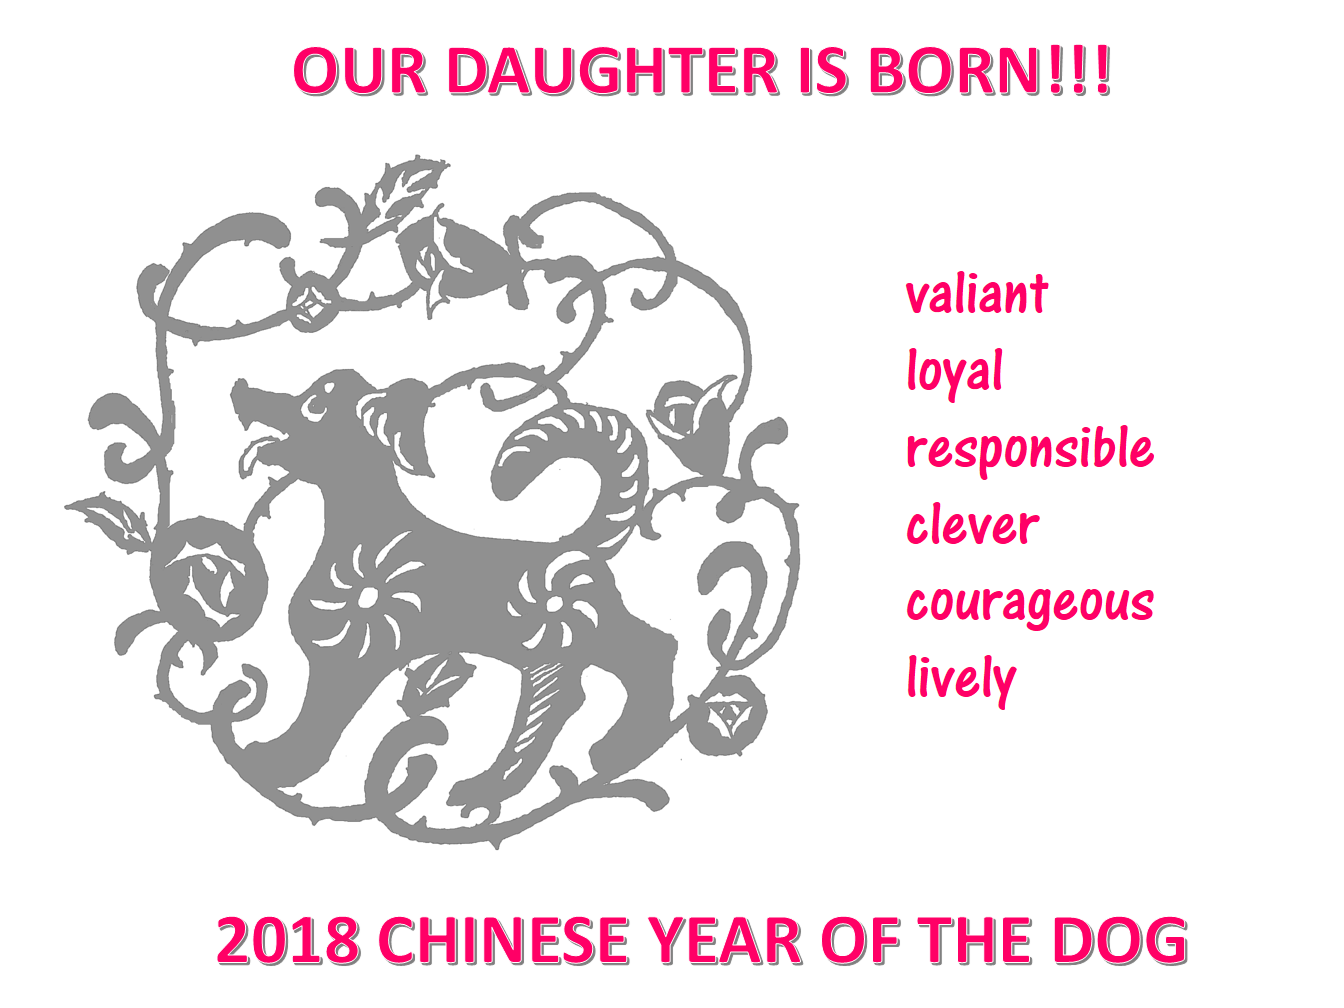 Chinese New Year Daughter Born Year of Dog main image